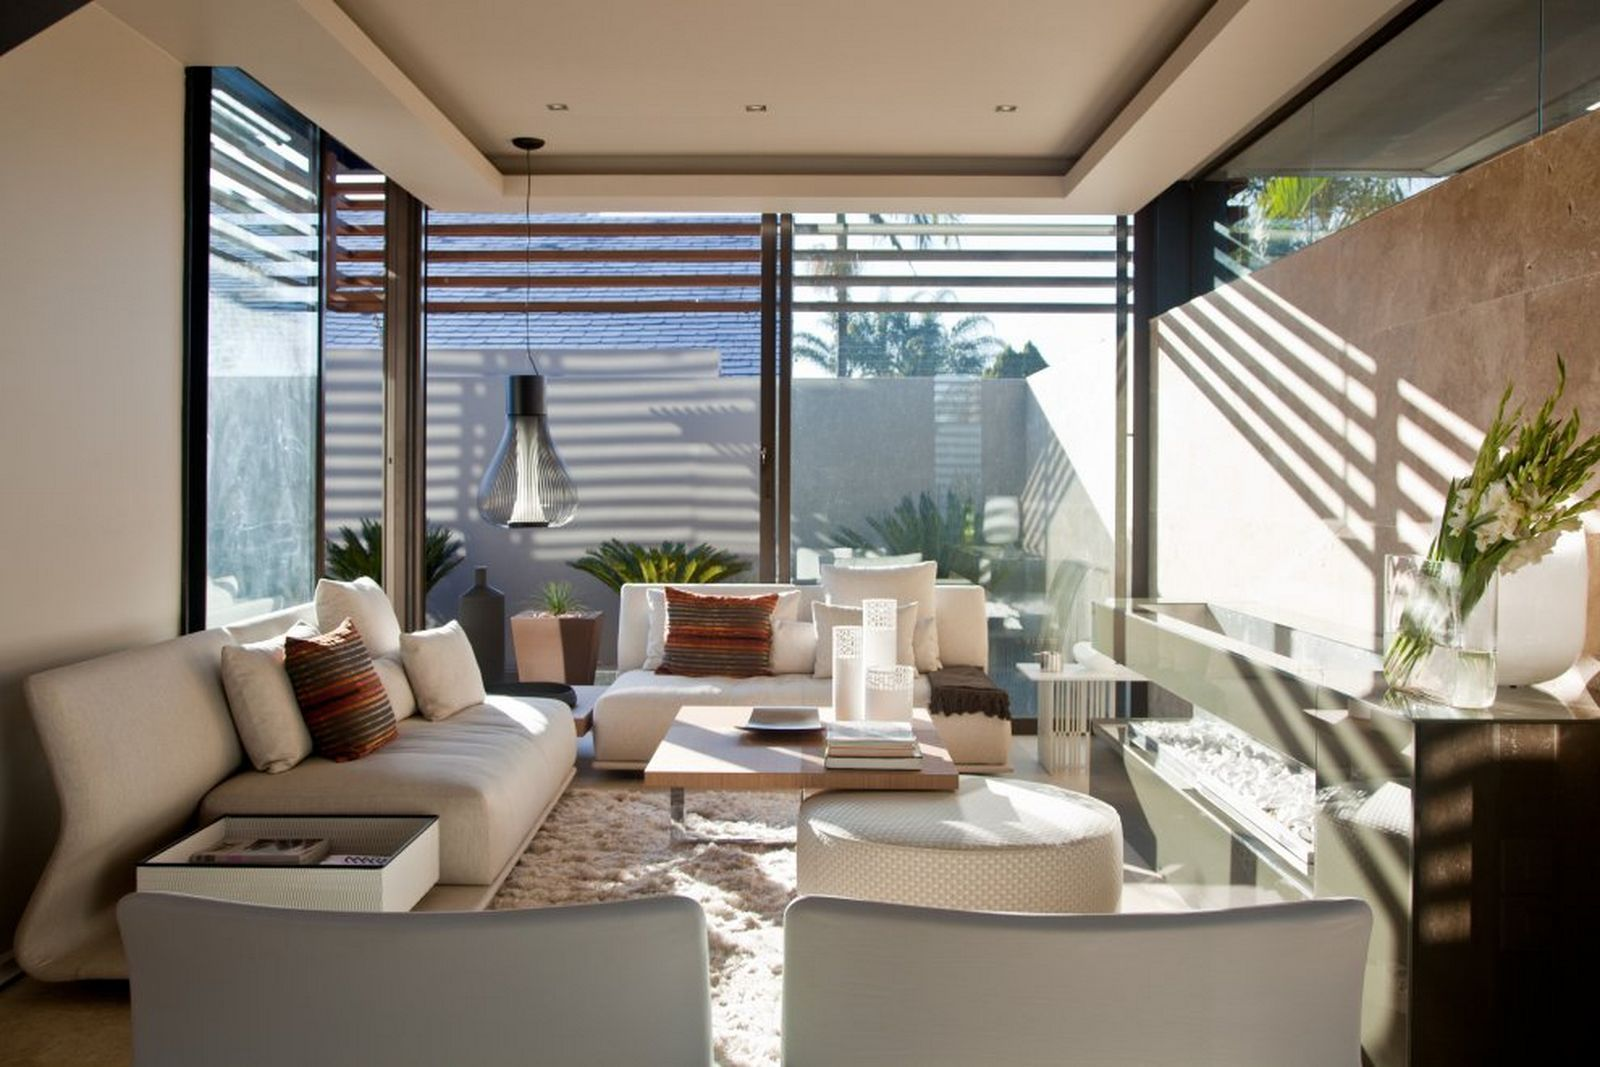 Interior Aboobaker By Nico Van Der Meulen Tropical Living Room Modern Home House Window Glass